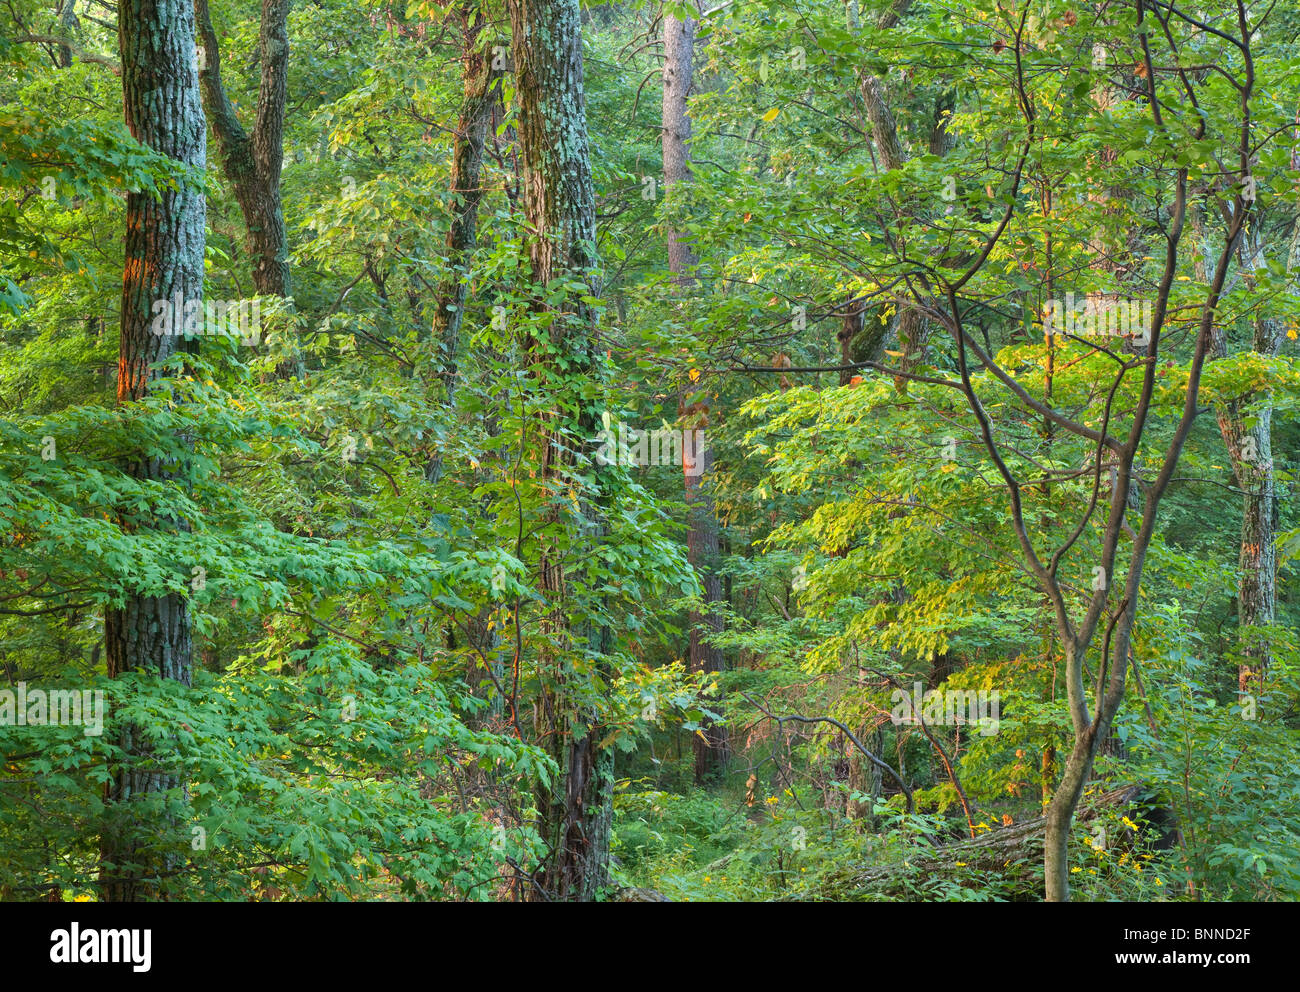 upland oak forest along the Knobstone Trail on Round Knob, Clark State Forest, Indiana - Stock Image